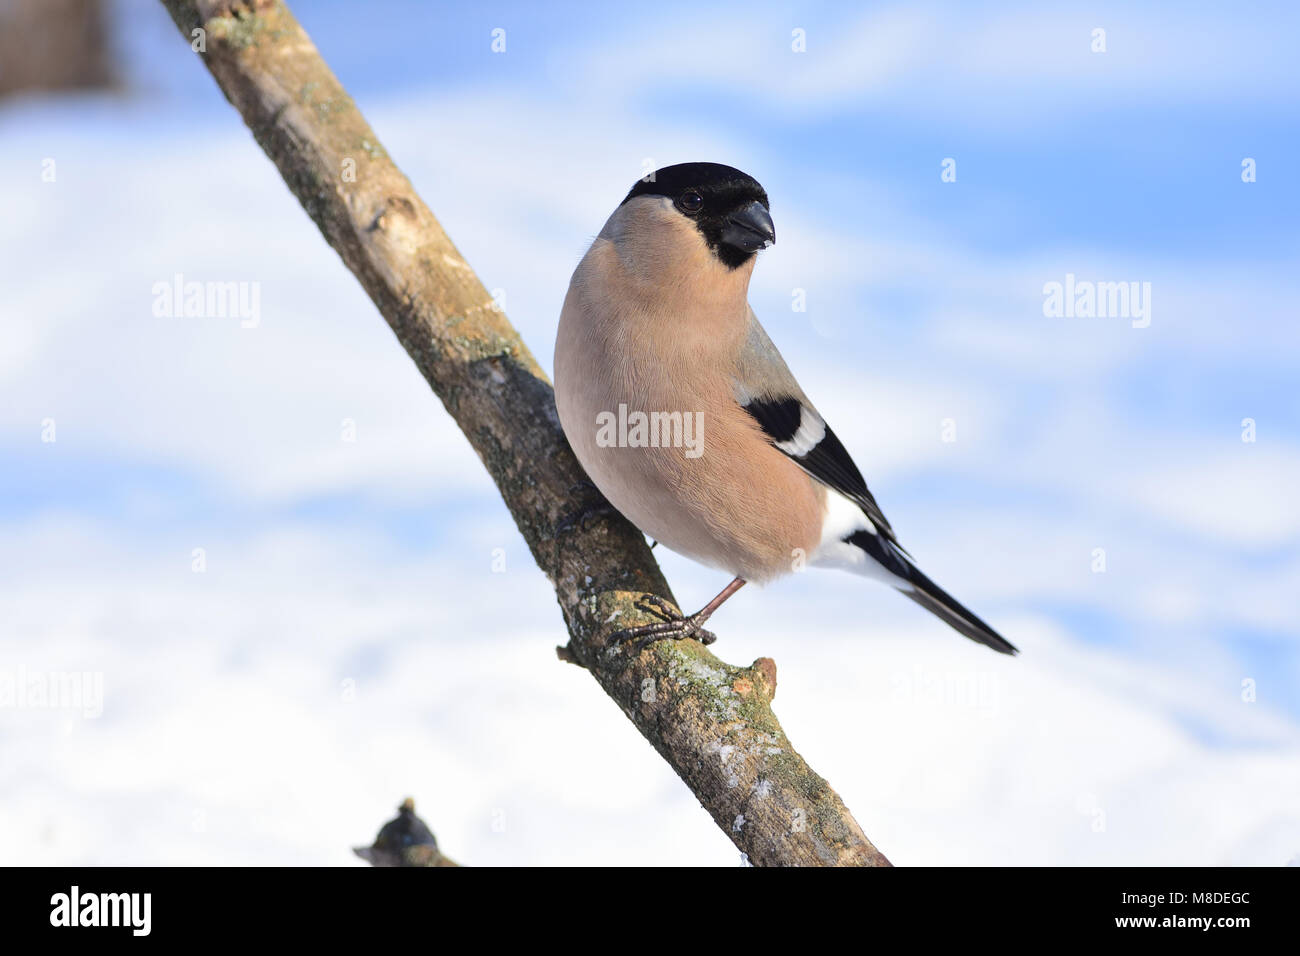 Female of eurasian (common) bullfinch (Pyrrhula pyrrhula) posing on a thick branch. Stock Photo